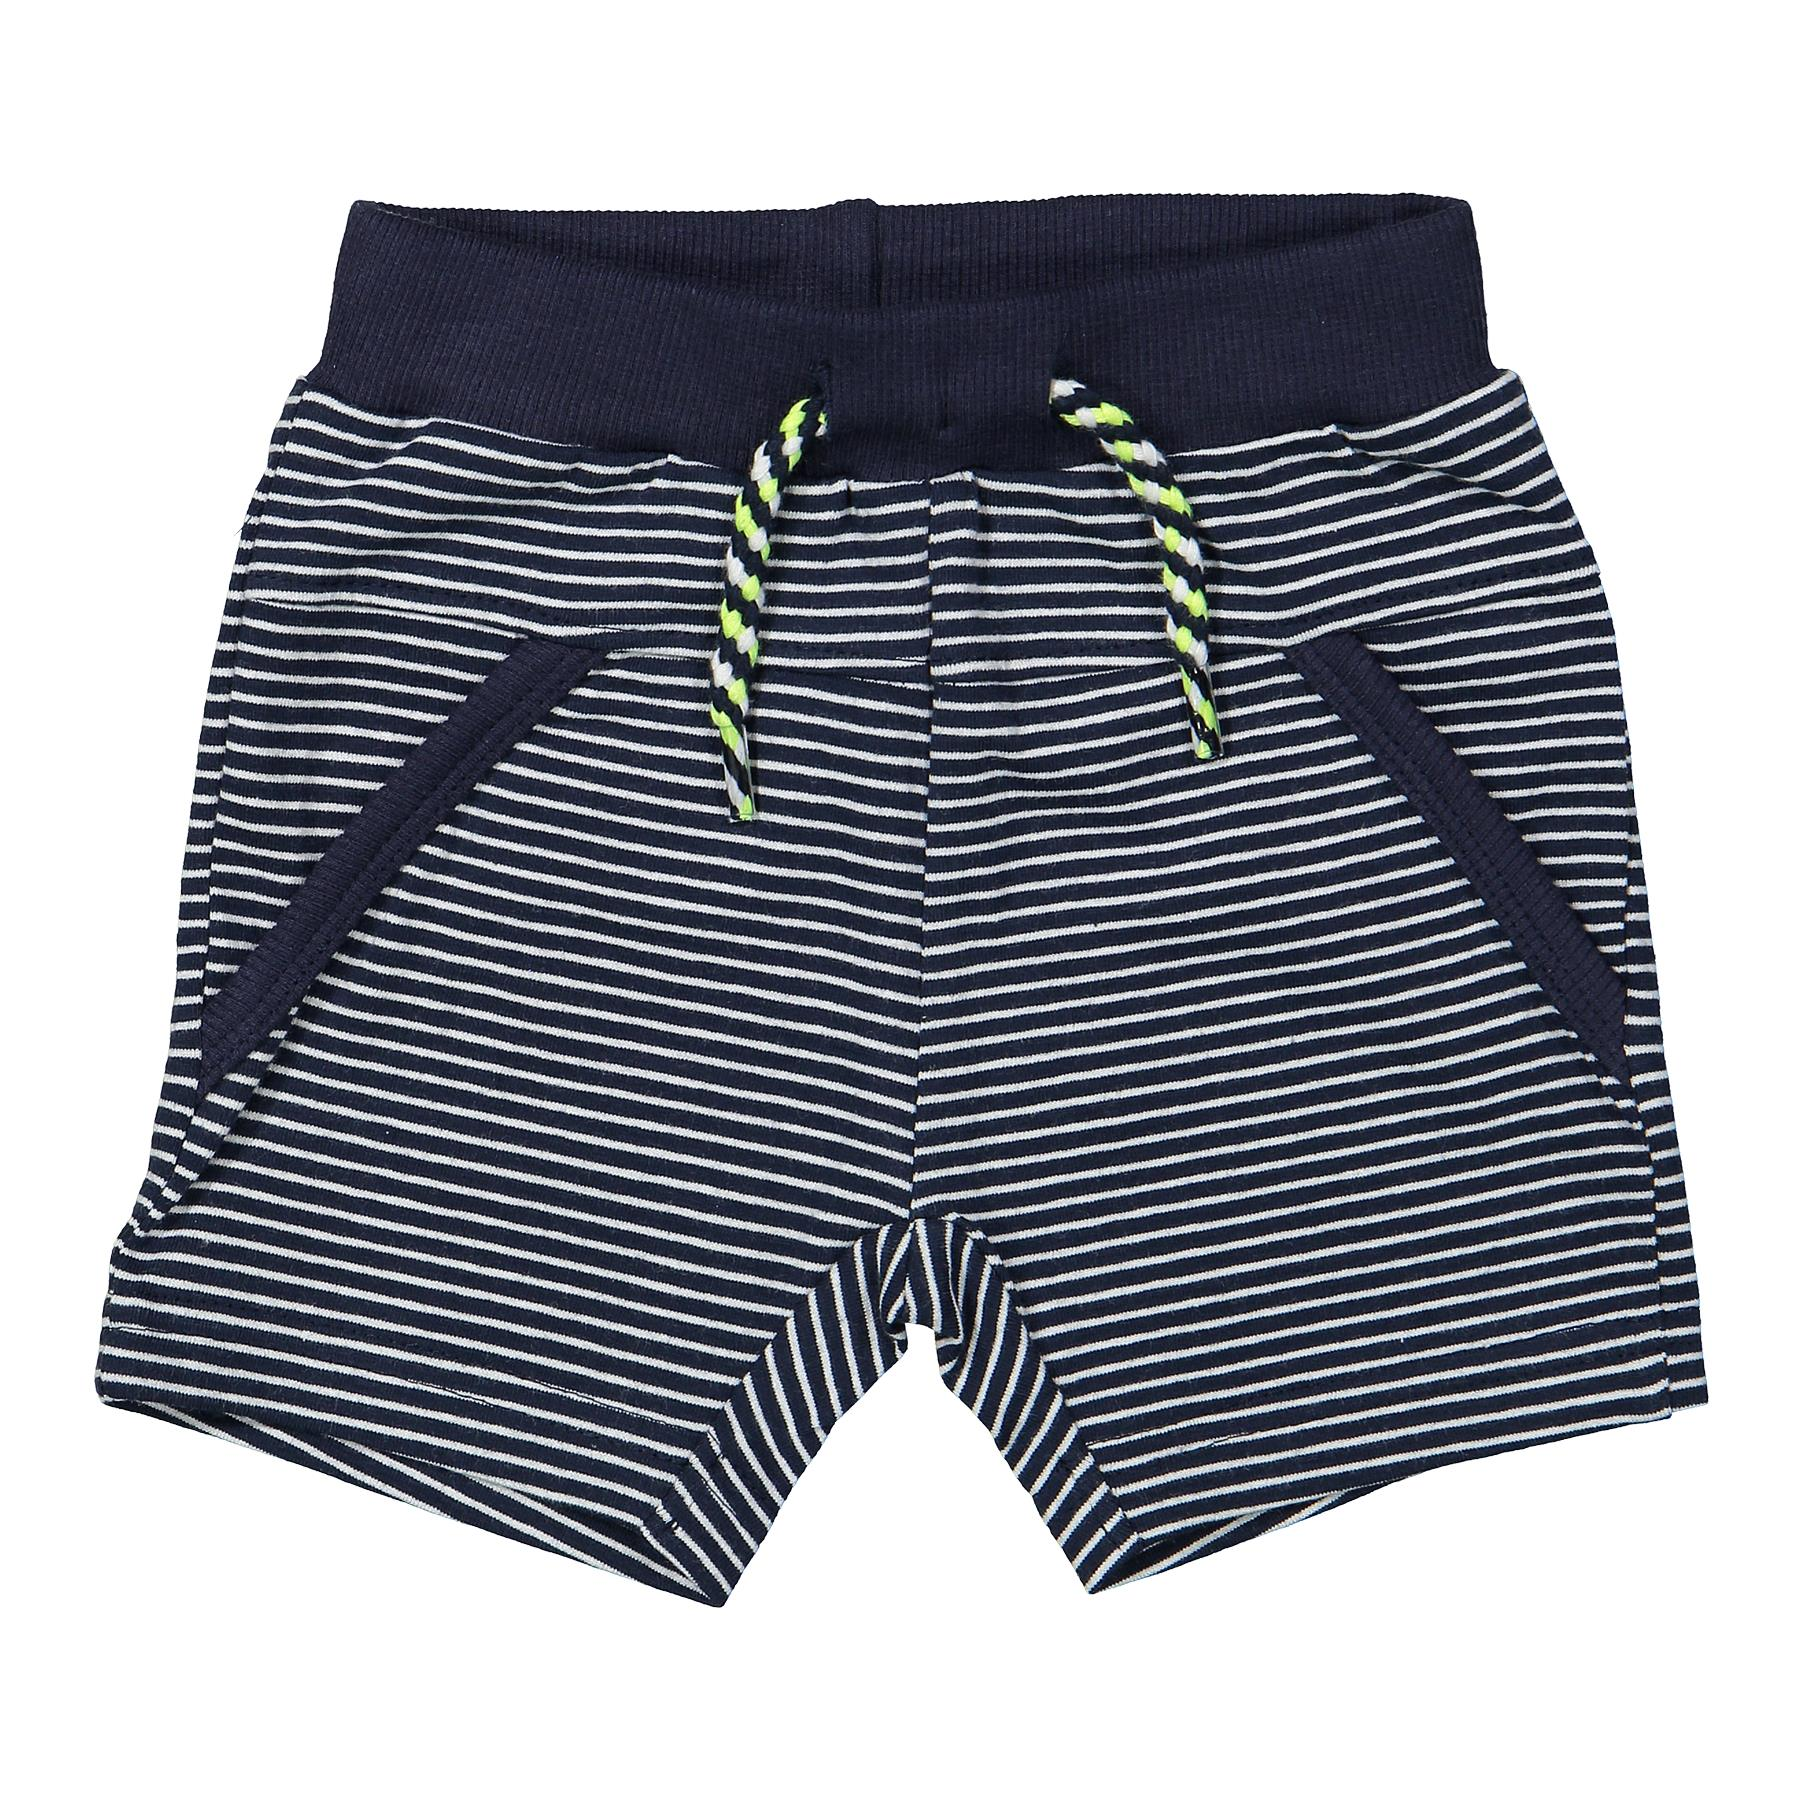 DIRKJE Šortky A-SO FRESH SPACE IT UP! vel. 80 Navy stripe